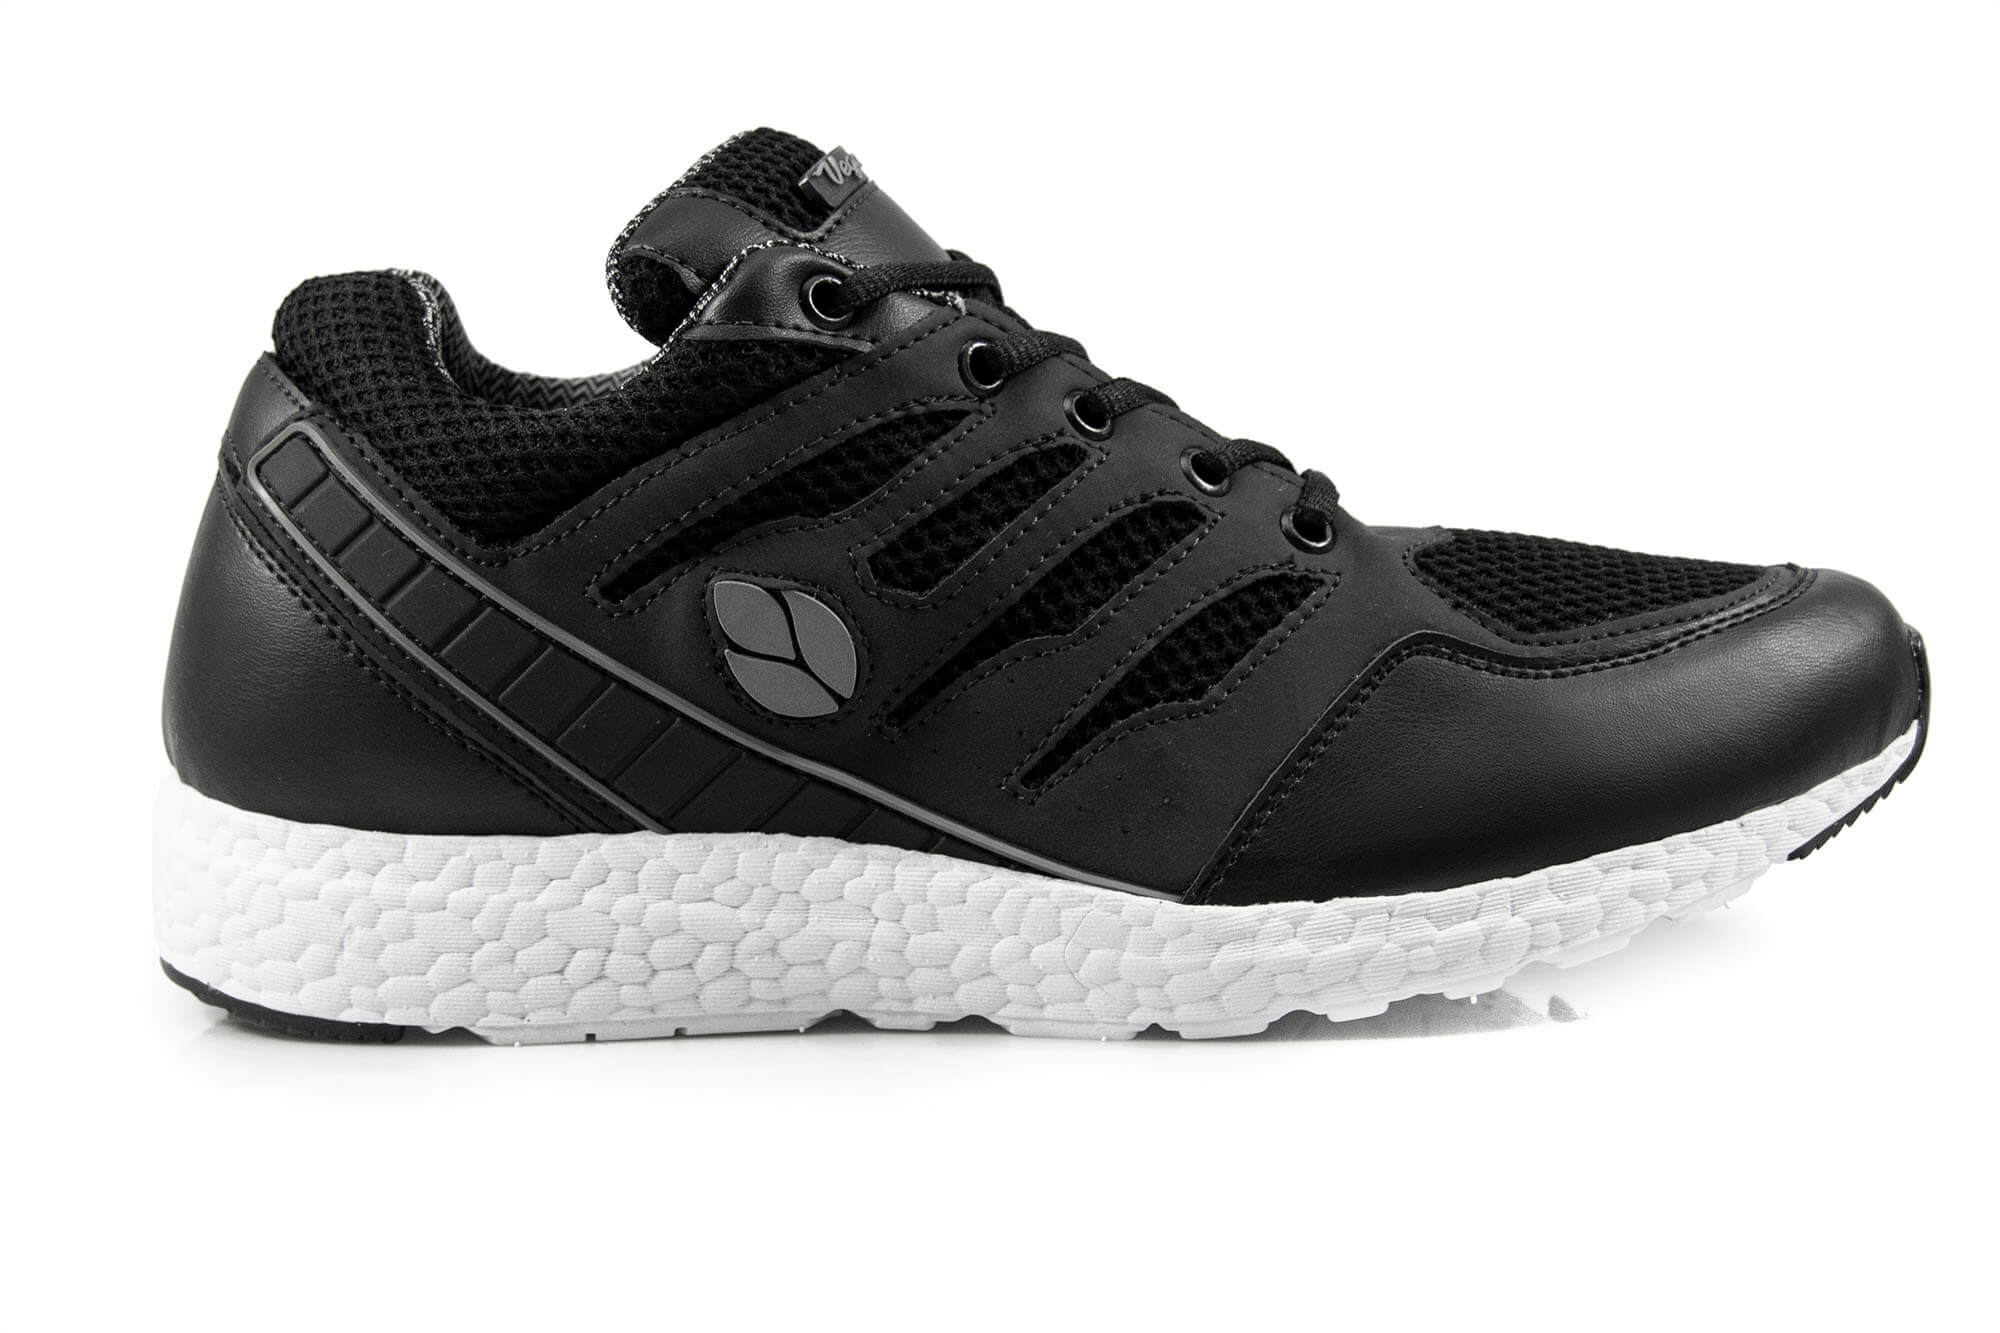 Tênis Vegano Shoes Strong Alpha Preto